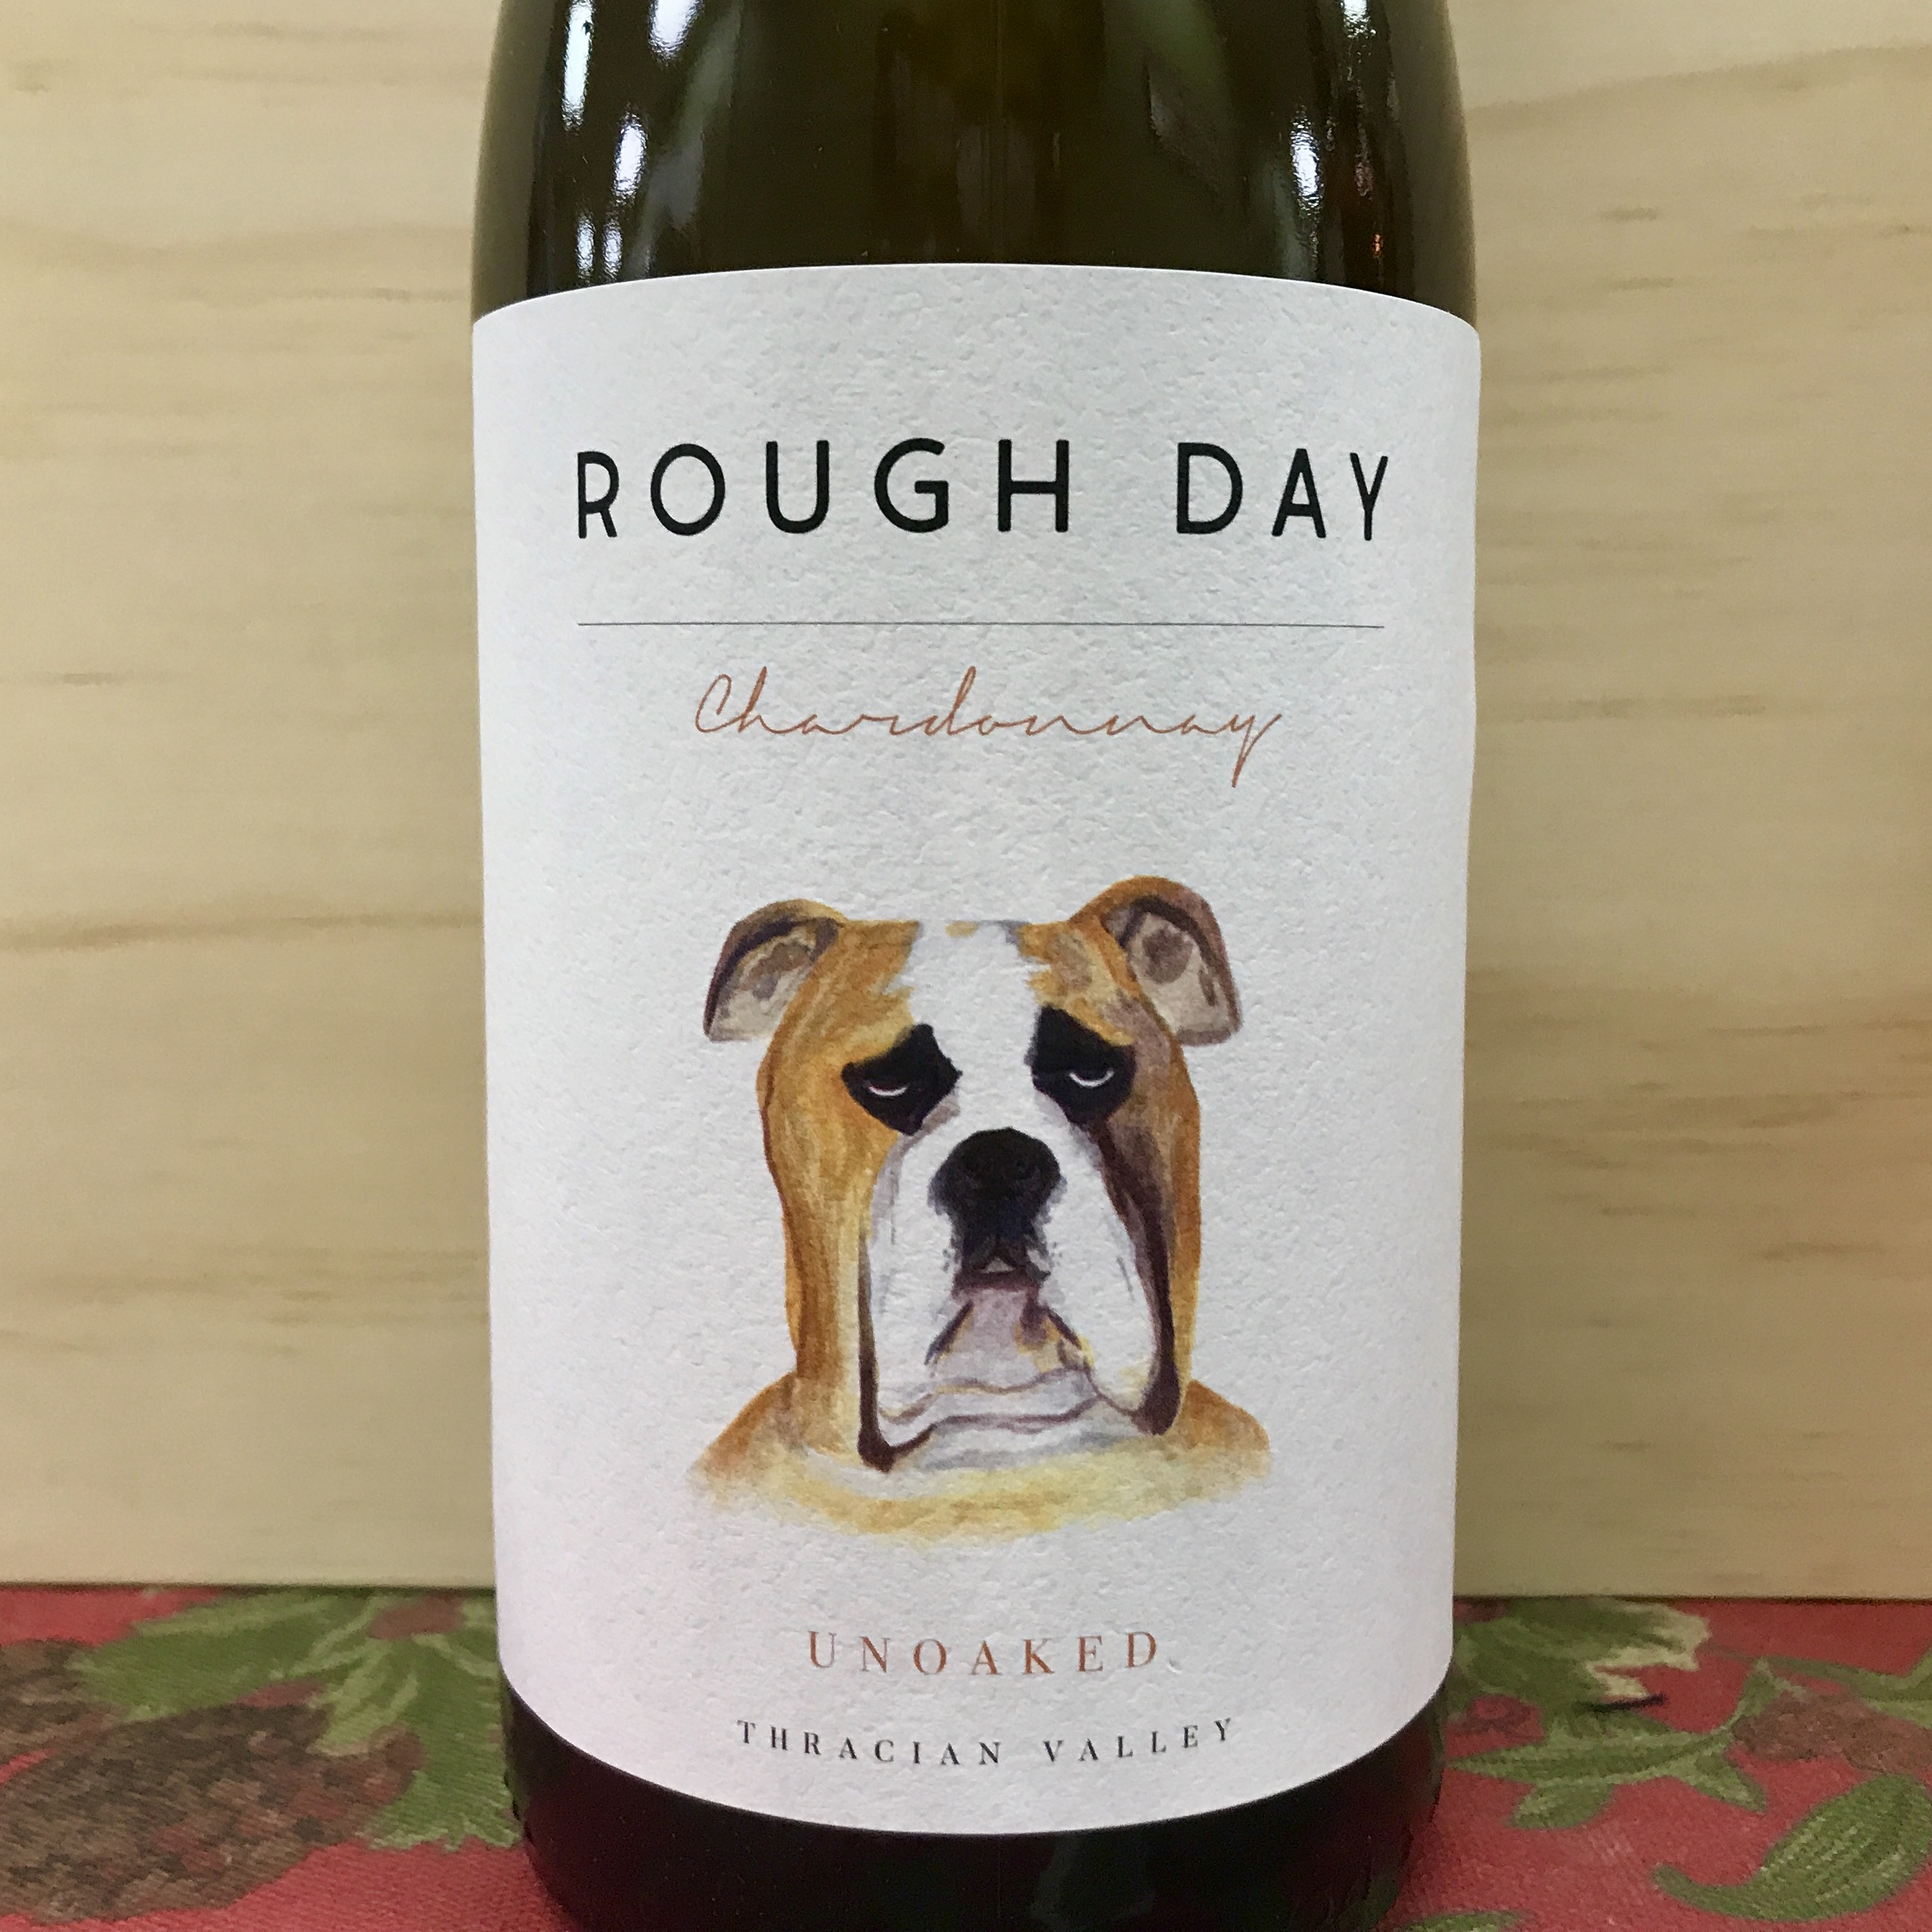 Rough Day Unoaked Chardonnay 2019